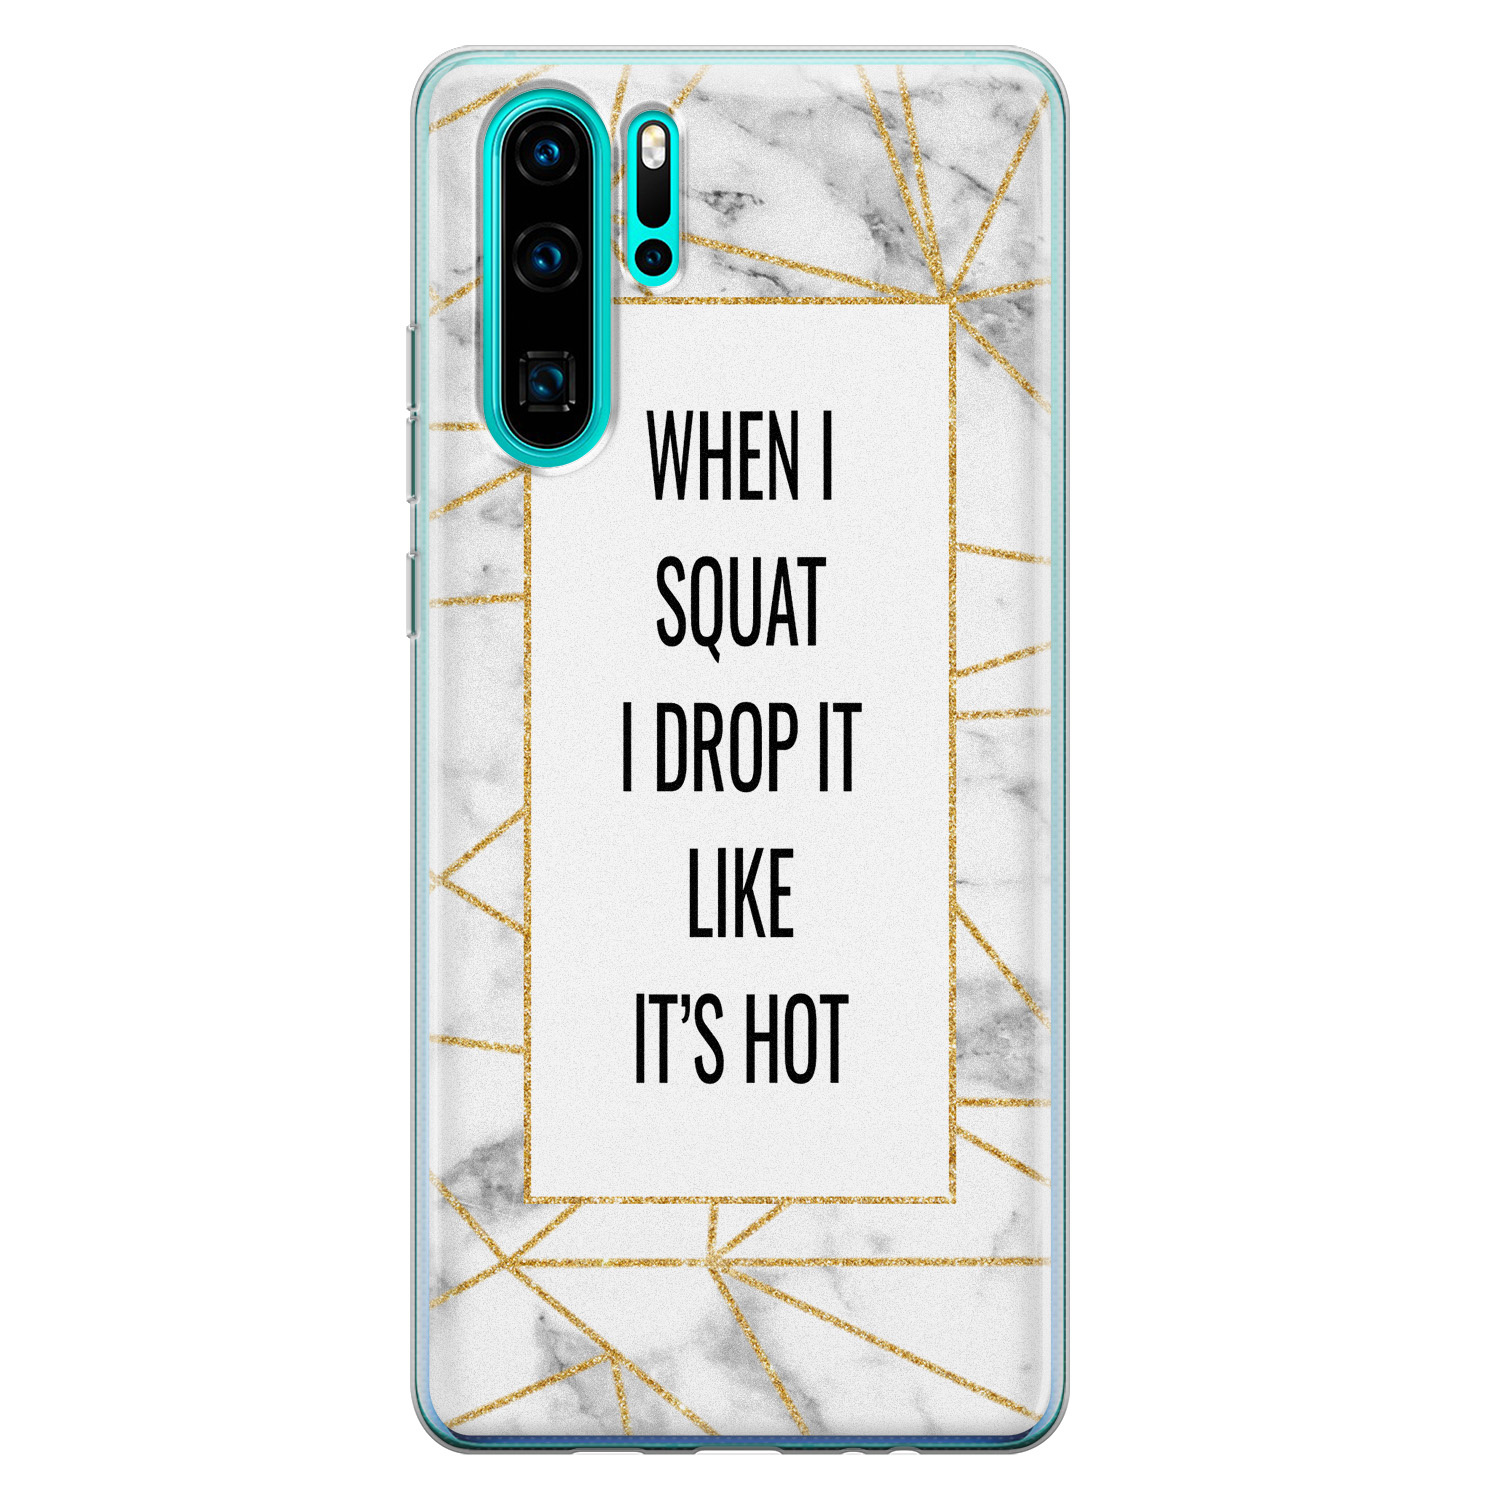 Huawei P30 Pro siliconen hoesje - Dropping squats